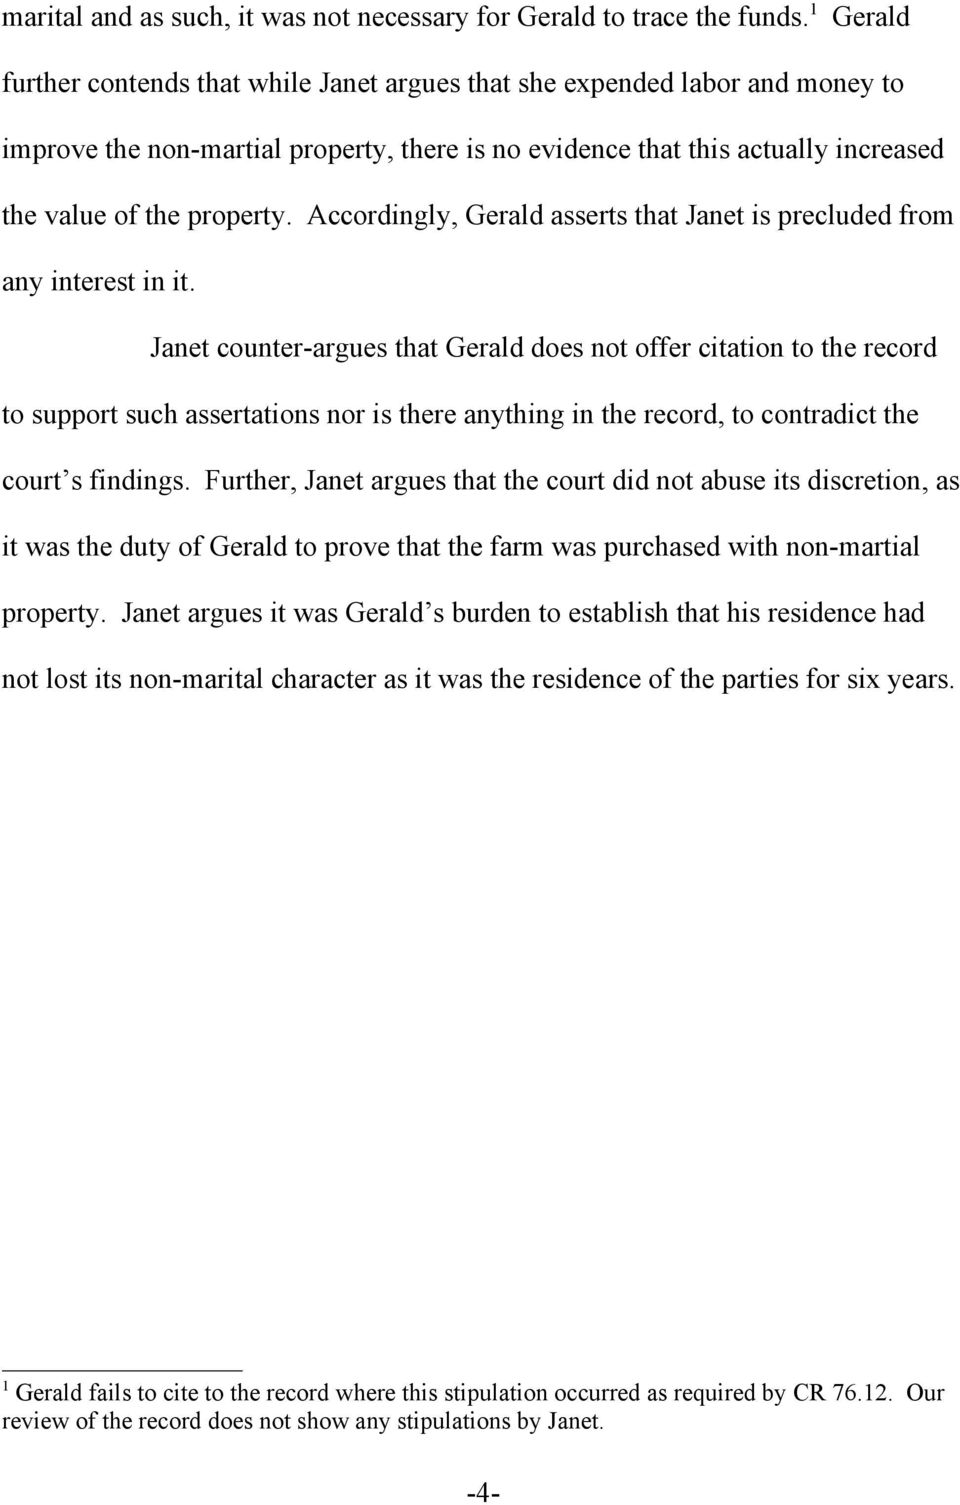 Accordingly, Gerald asserts that Janet is precluded from any interest in it.